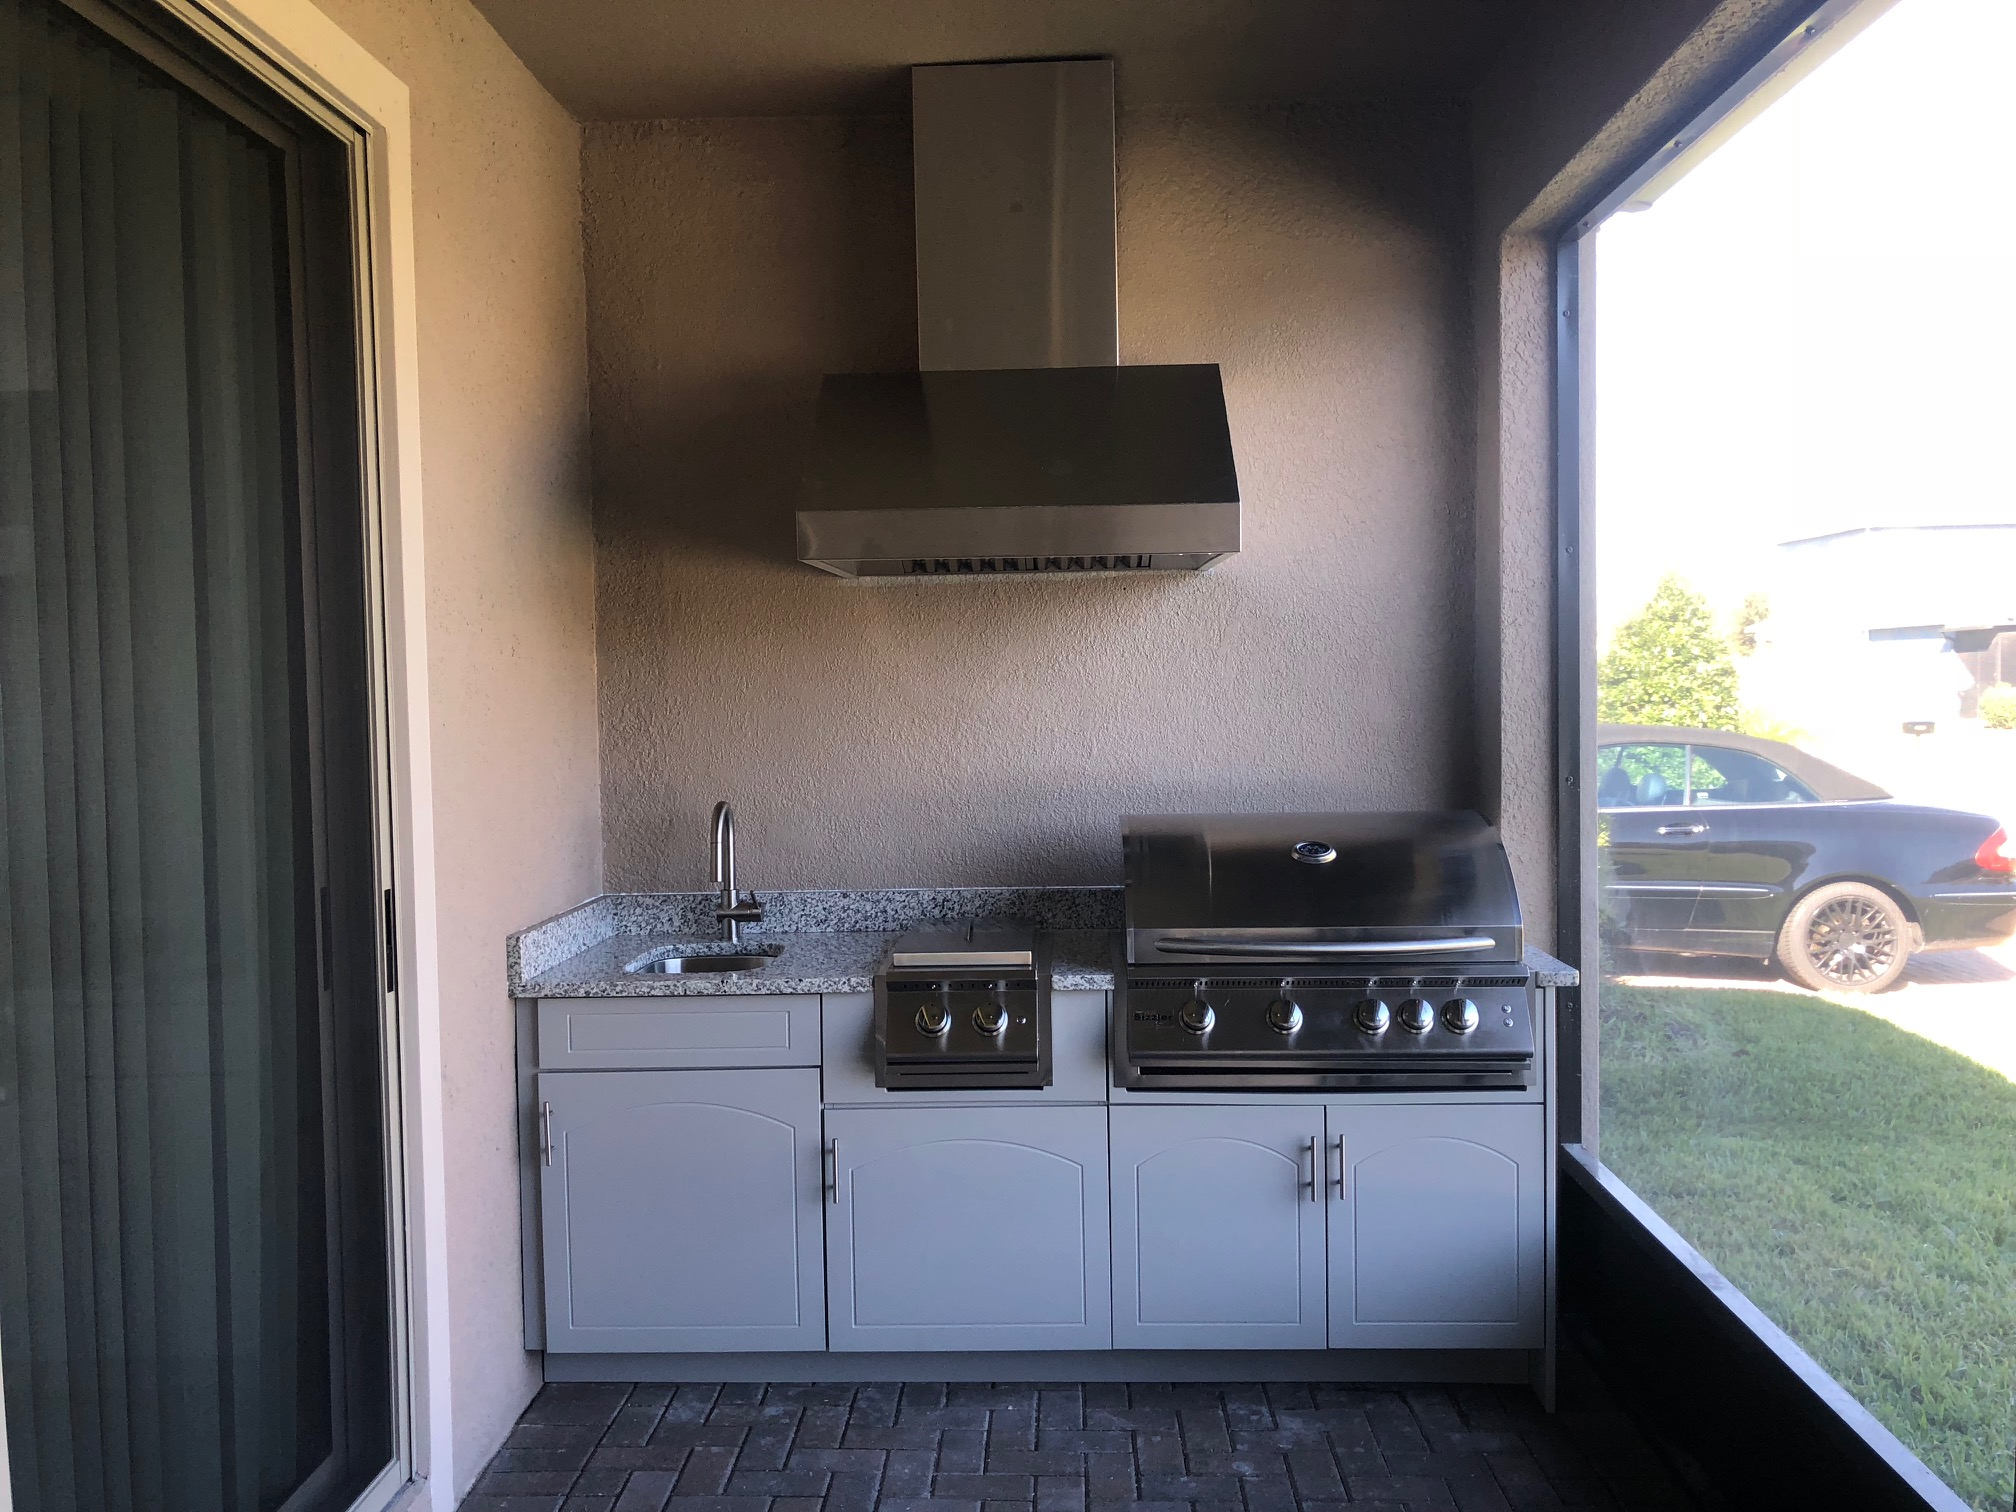 Outdoor Kitchen with Range Hood - Synergy Outdoor Living on Synergy Outdoor Living  id=89382